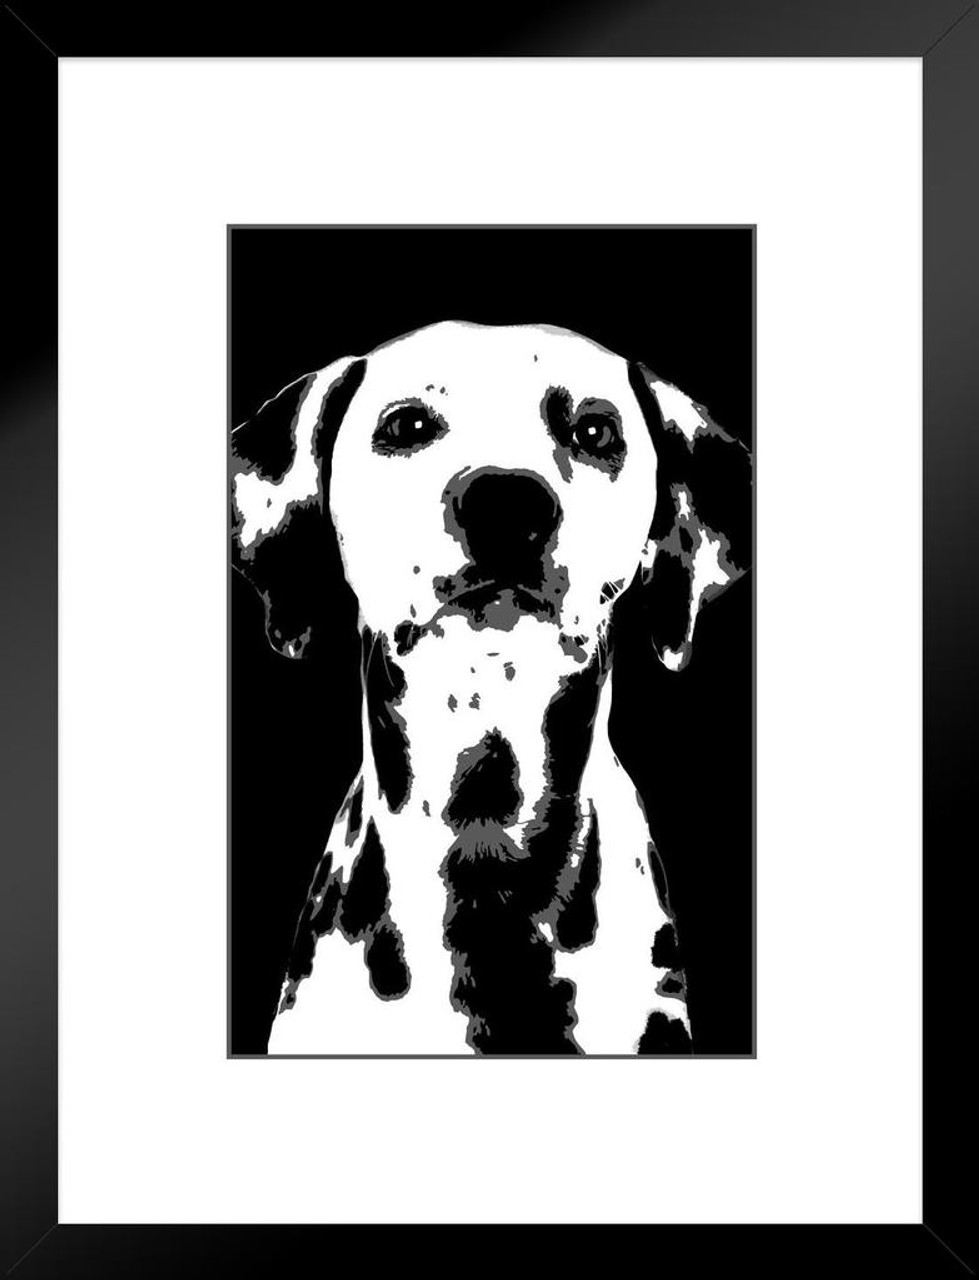 Dogs Dalmation Painting Black White With Border Matted Framed Wall